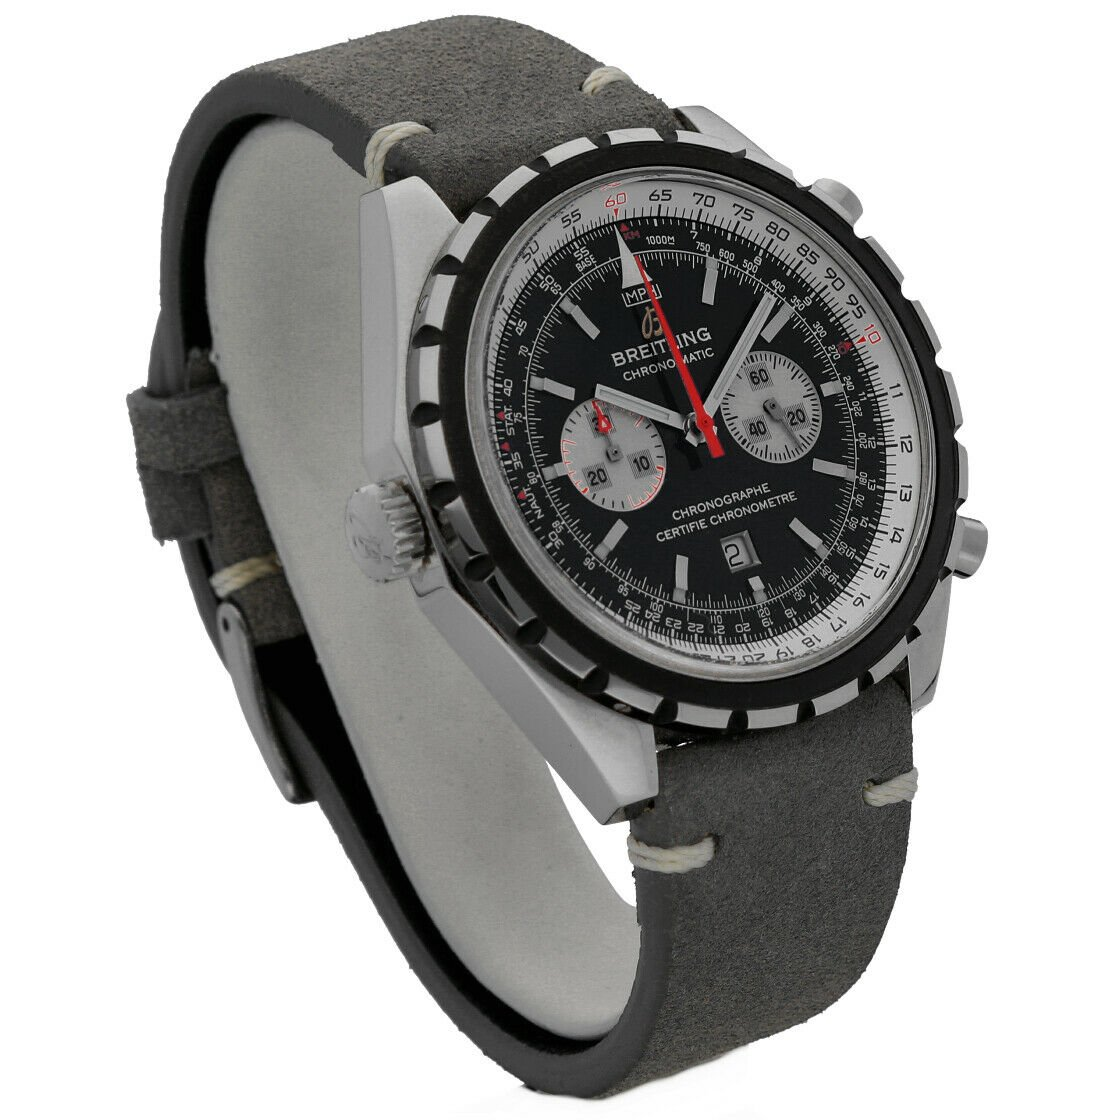 Breitling A41360 Chronomatic Chrono Leather Automatic Mens Watch BoxPapers 124132399902 3